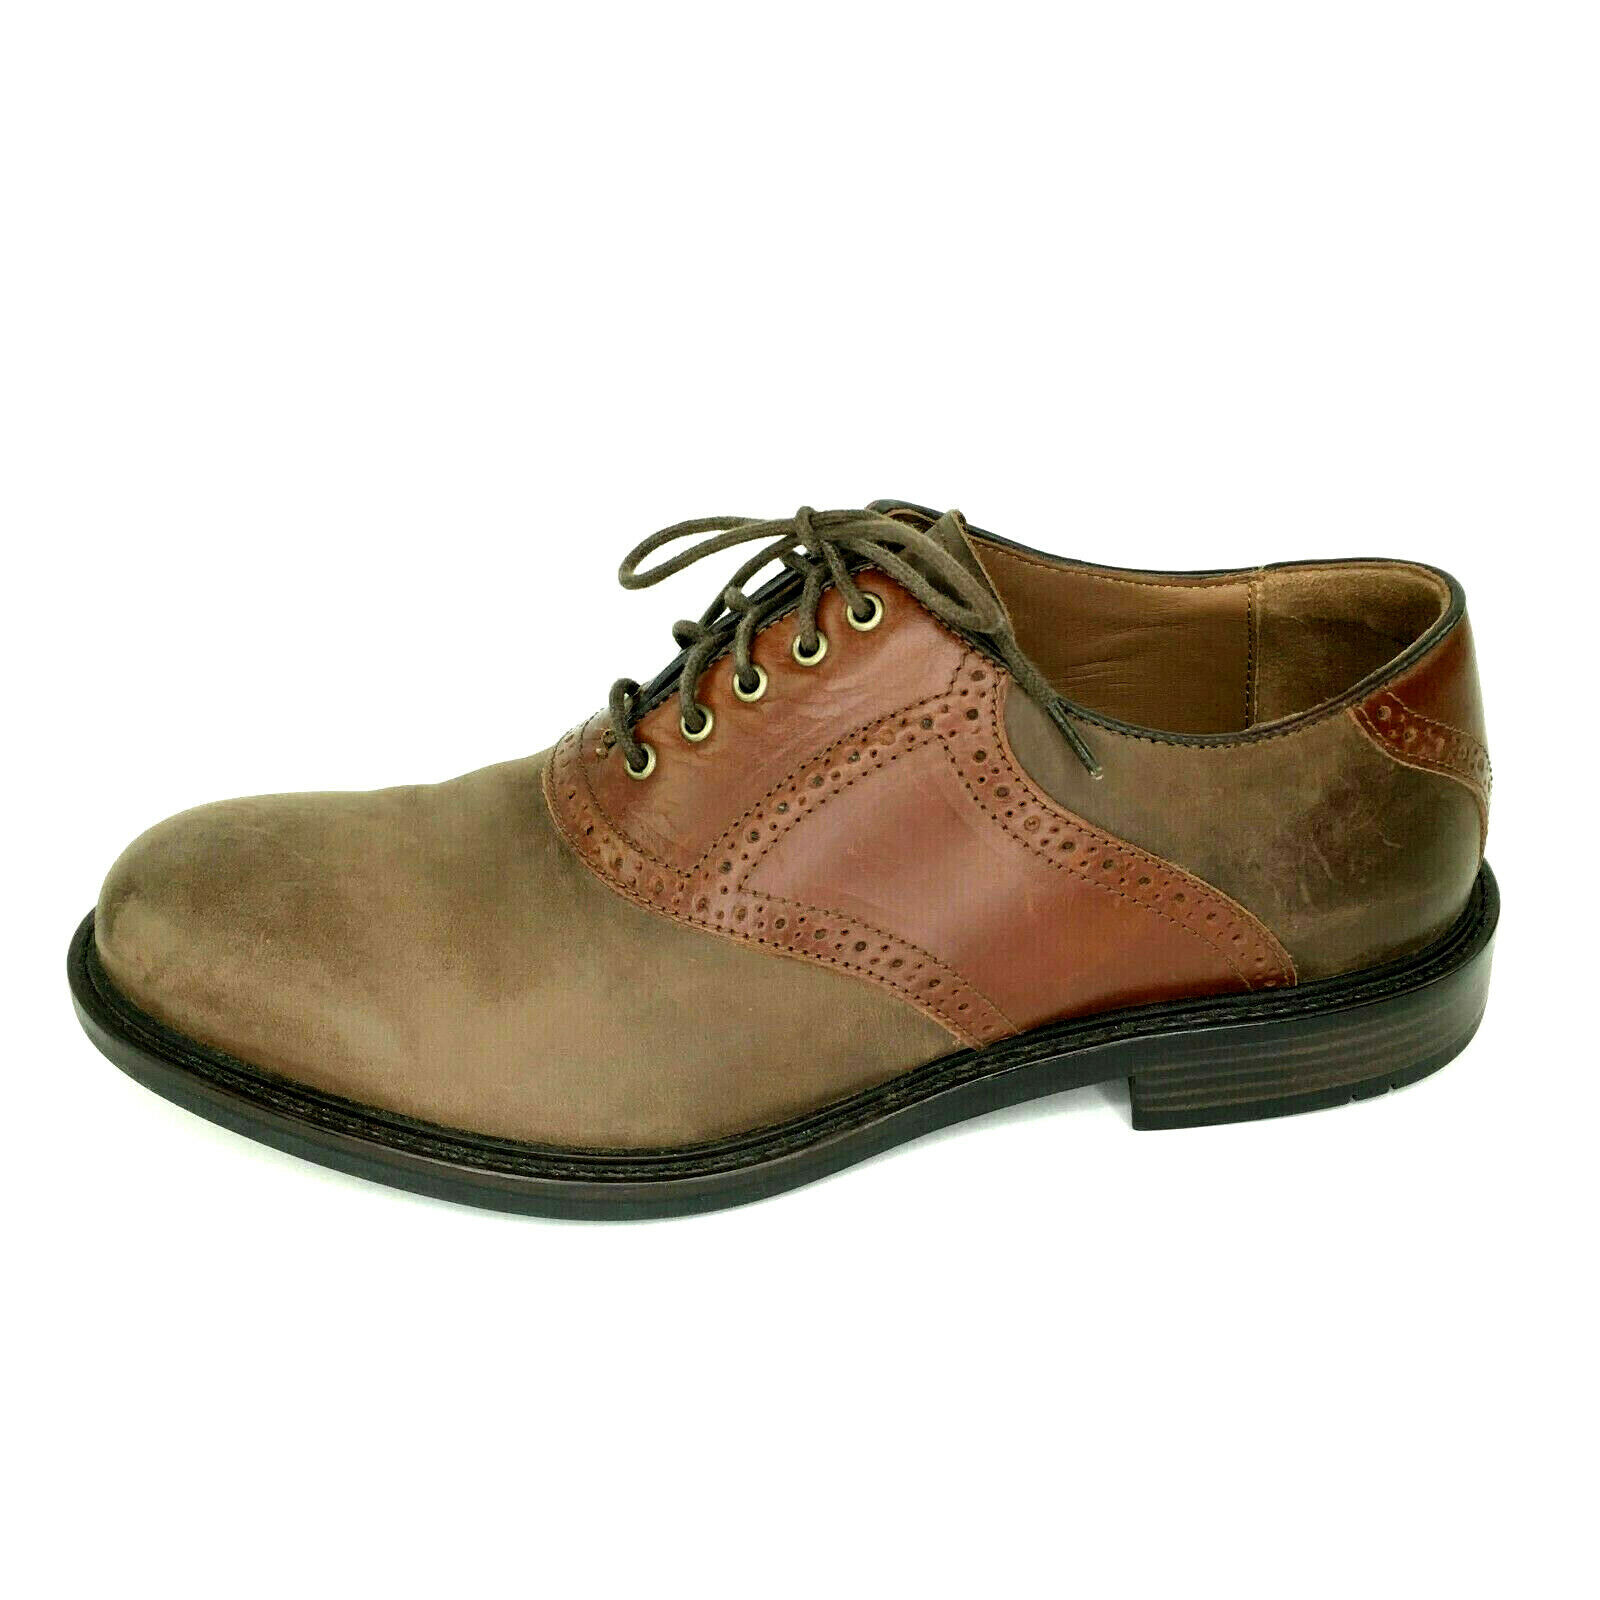 Johnston & Murphy Tabor Saddle Leather Oxfords Mens Size 9.5 Brown 20-2272